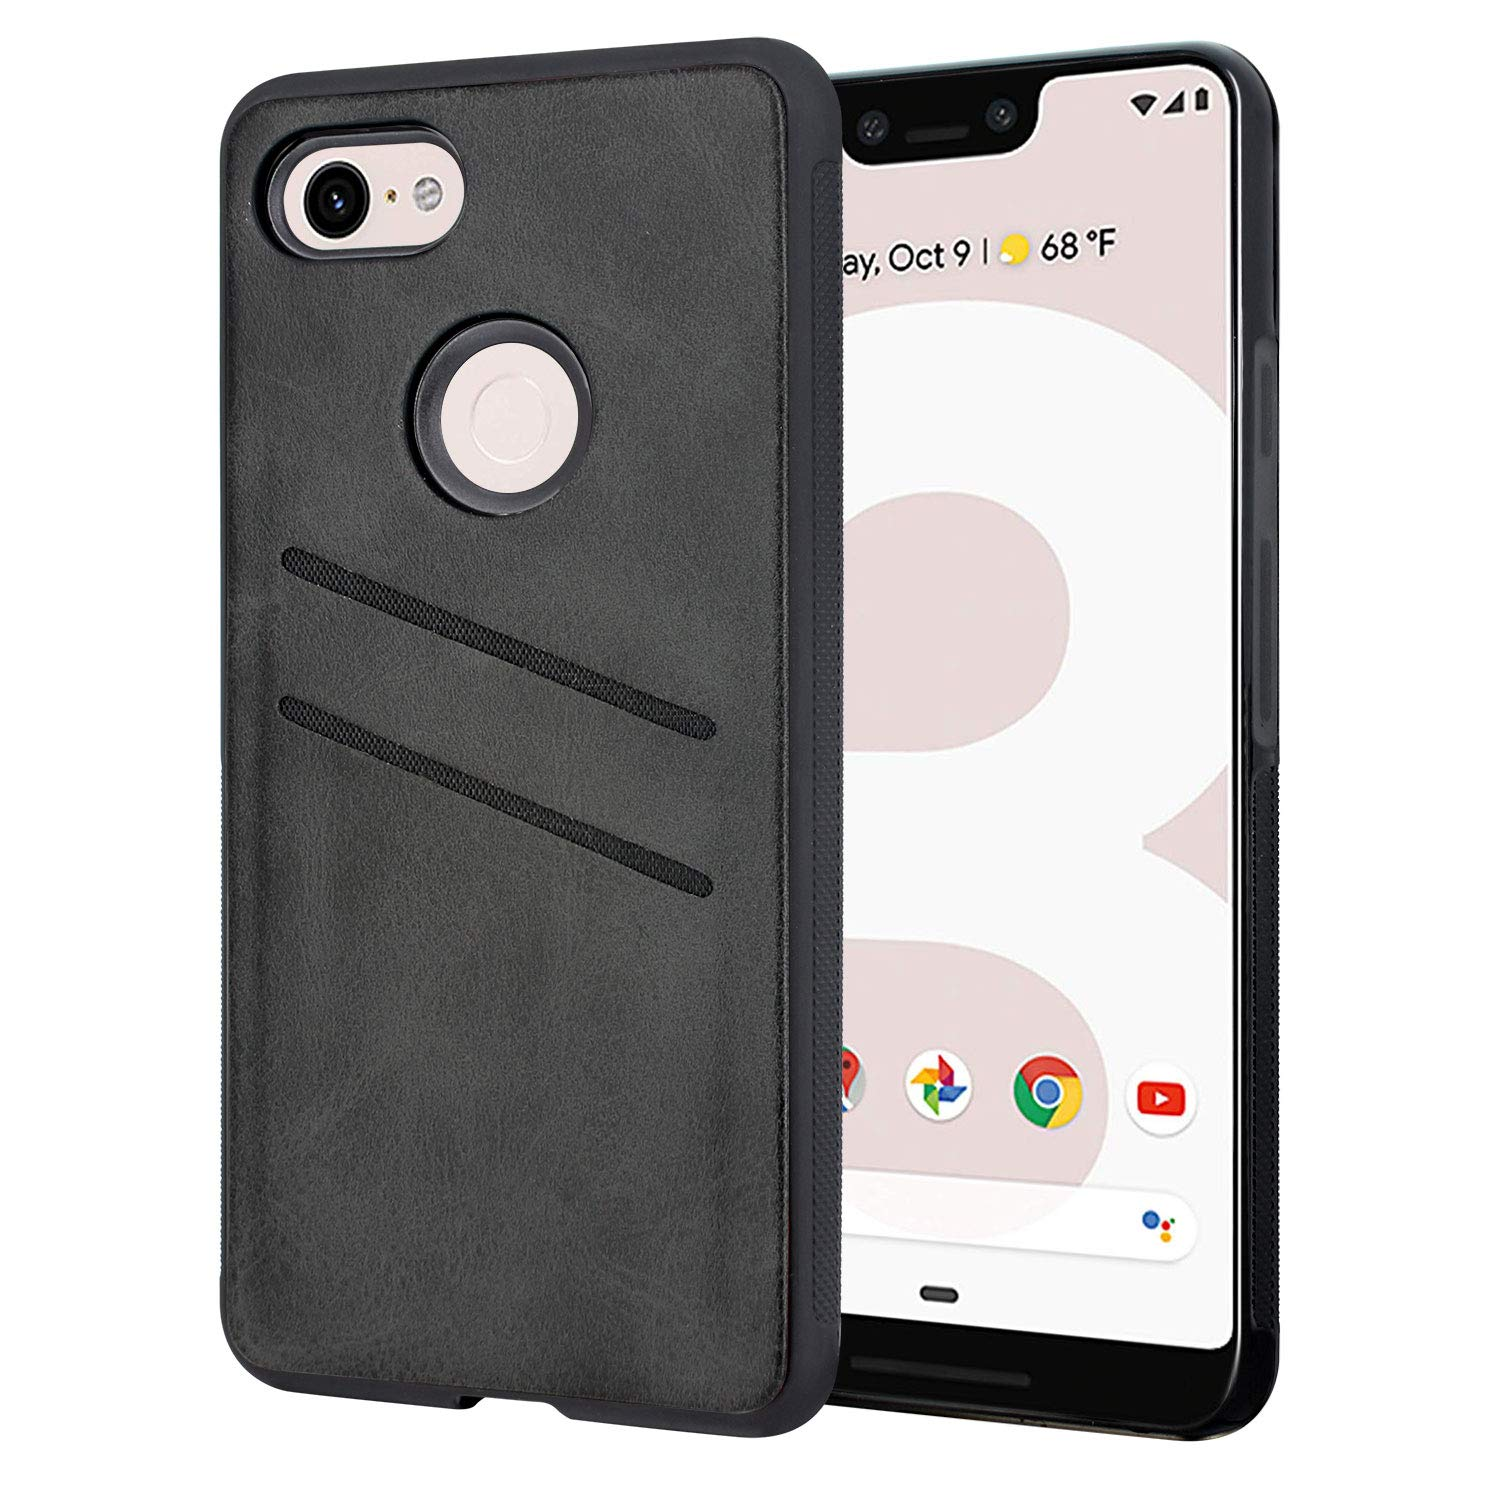 newest fbfee 84869 Google Pixel 3 XL Card Holder Case, Harryshell Shockproof Slim Armor  Leather Wallet Case Cover with ID Credit Card Slot for Google Pixel 3 XL  (2018) ...